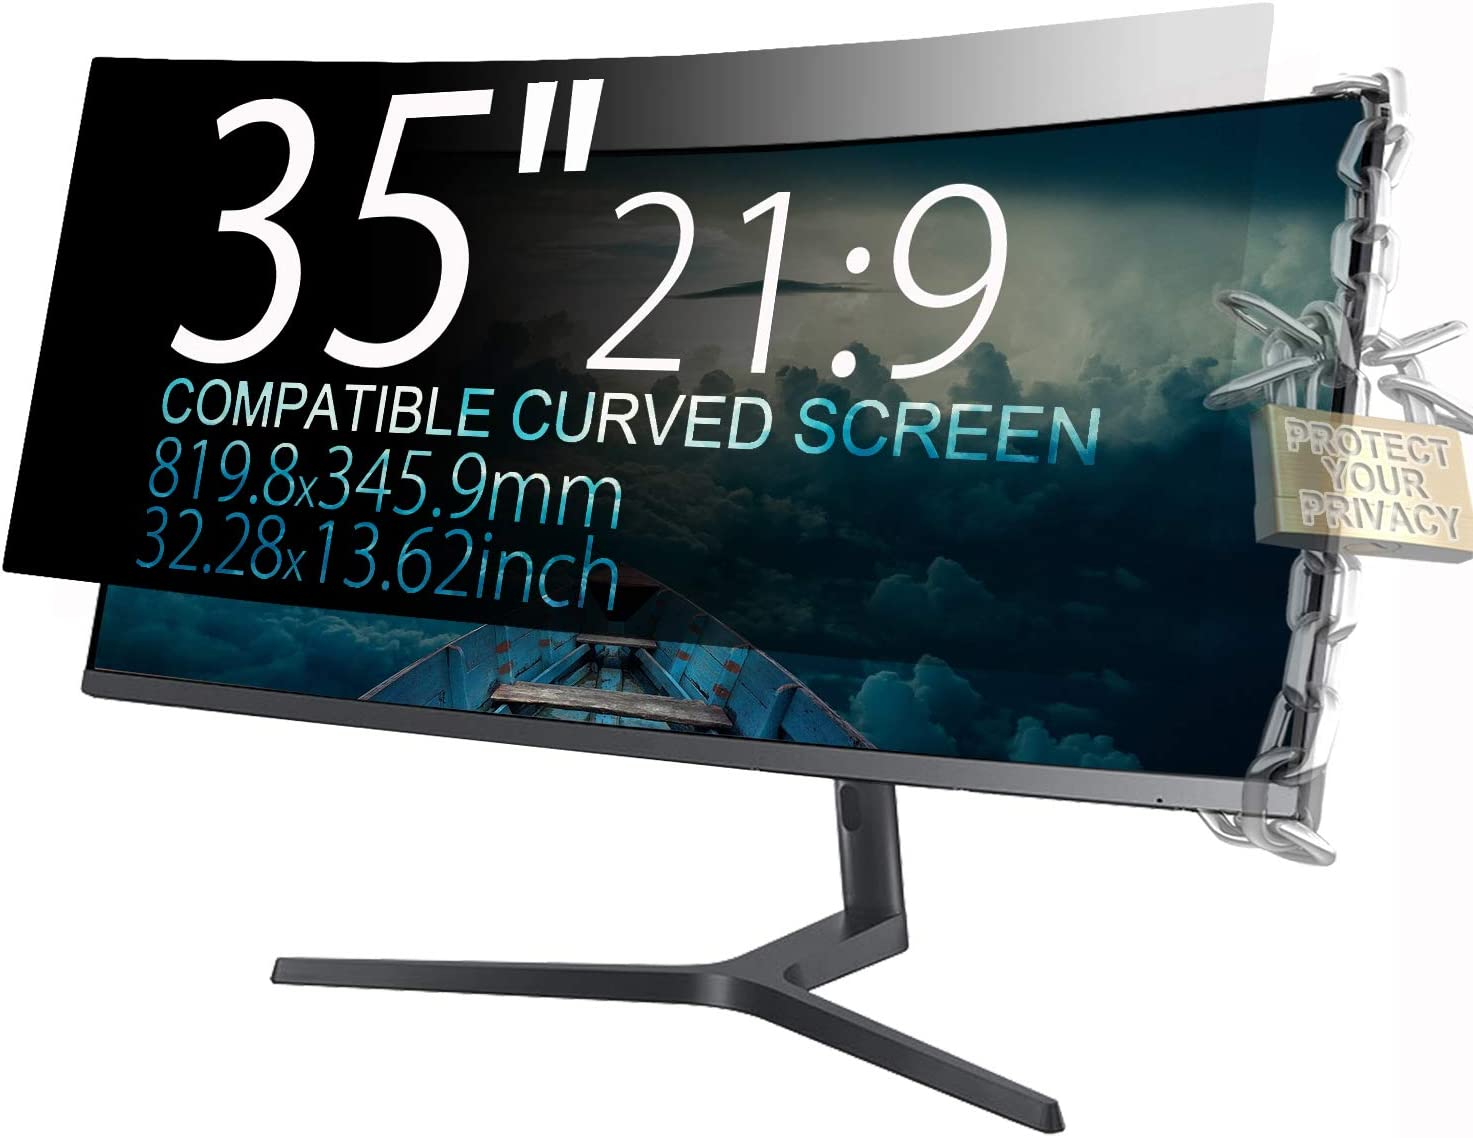 """MAYAMANG 35"""" (21:9 Aspect Ratio) Privacy Screen Protector for Straight/Curved Screen Computer Monitor - 32.28x13.62 inch/819.8x345.9 mm - Privacy Filter Display Filter Film"""